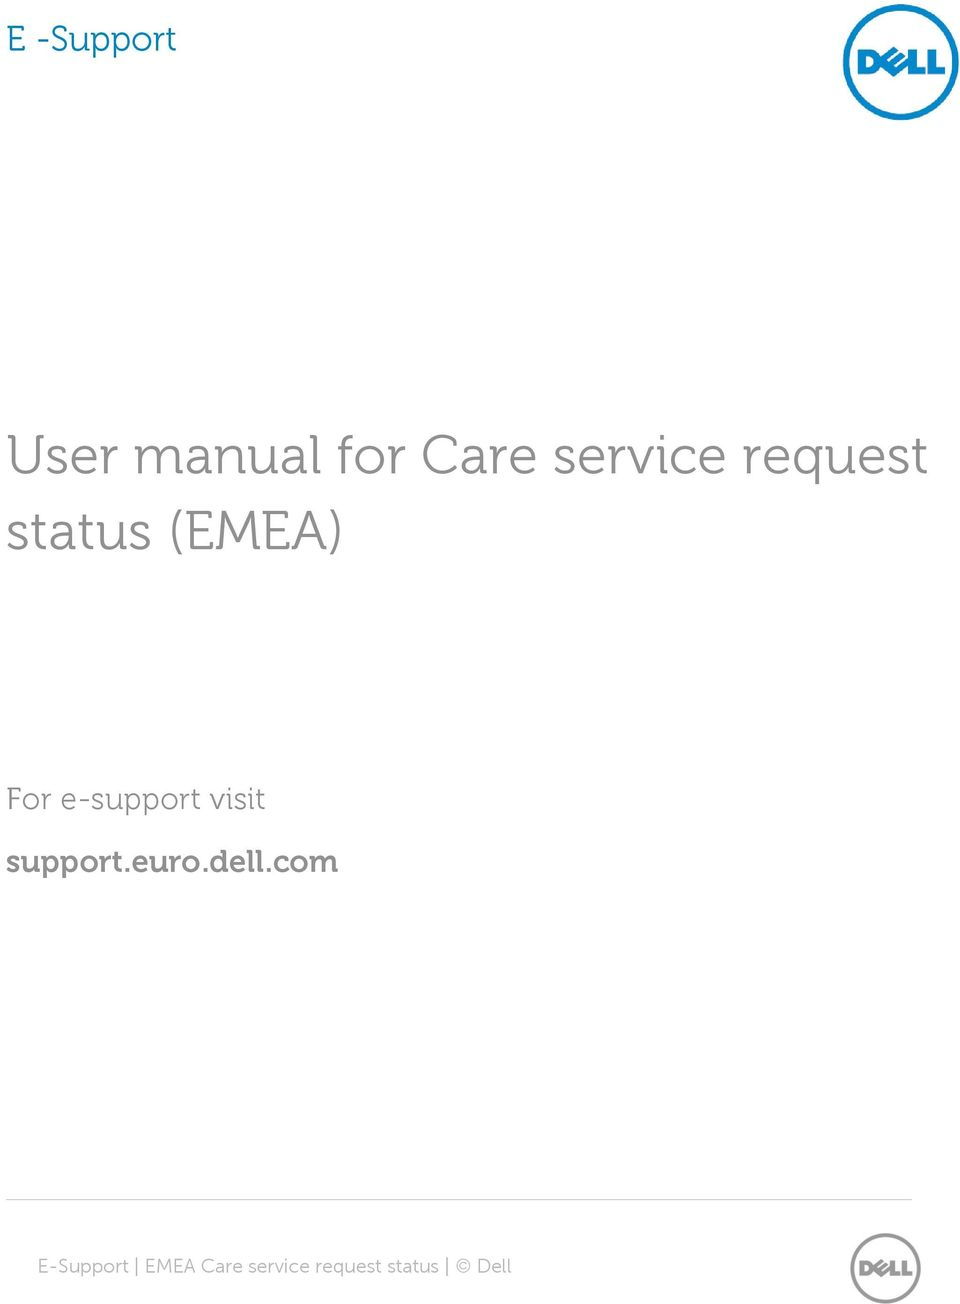 e-support visit support.euro.dell.